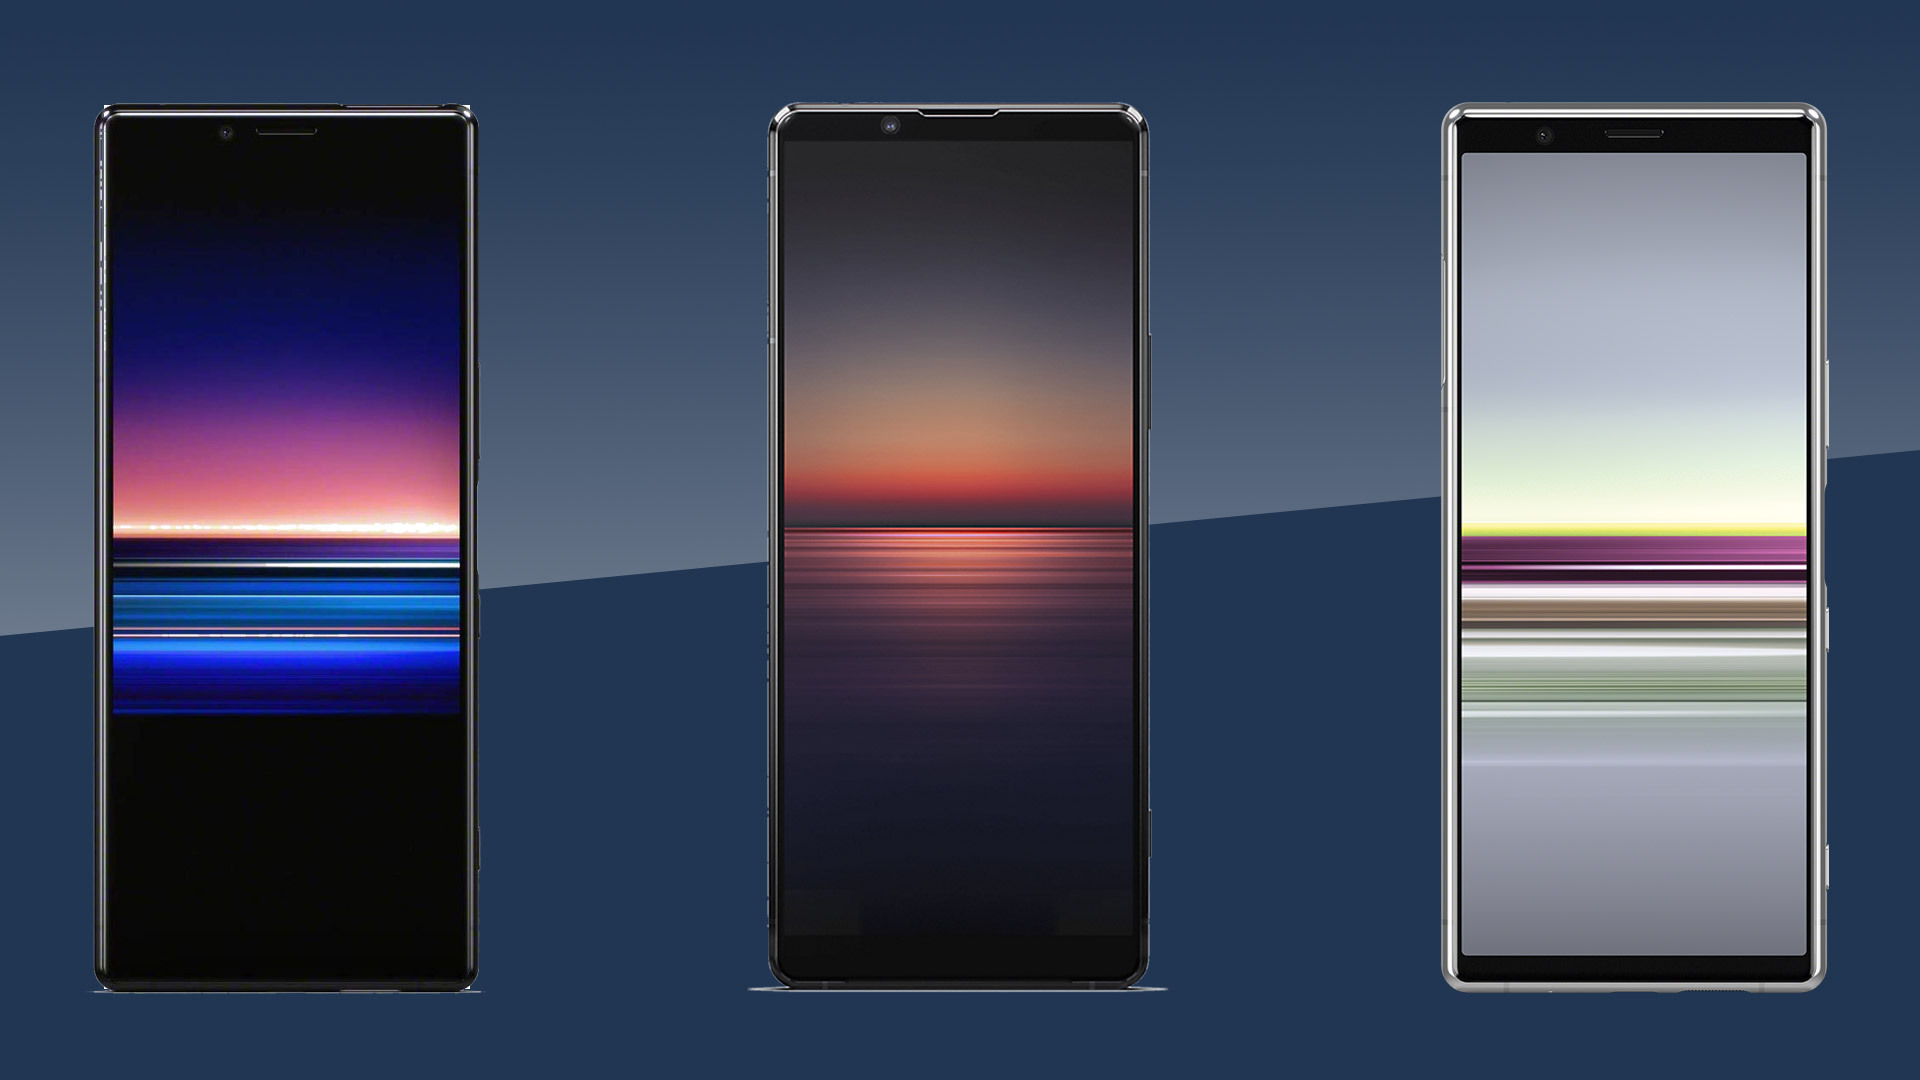 Best Sony Phones 2021 Finding The Right Sony Xperia Phone For You Techradar